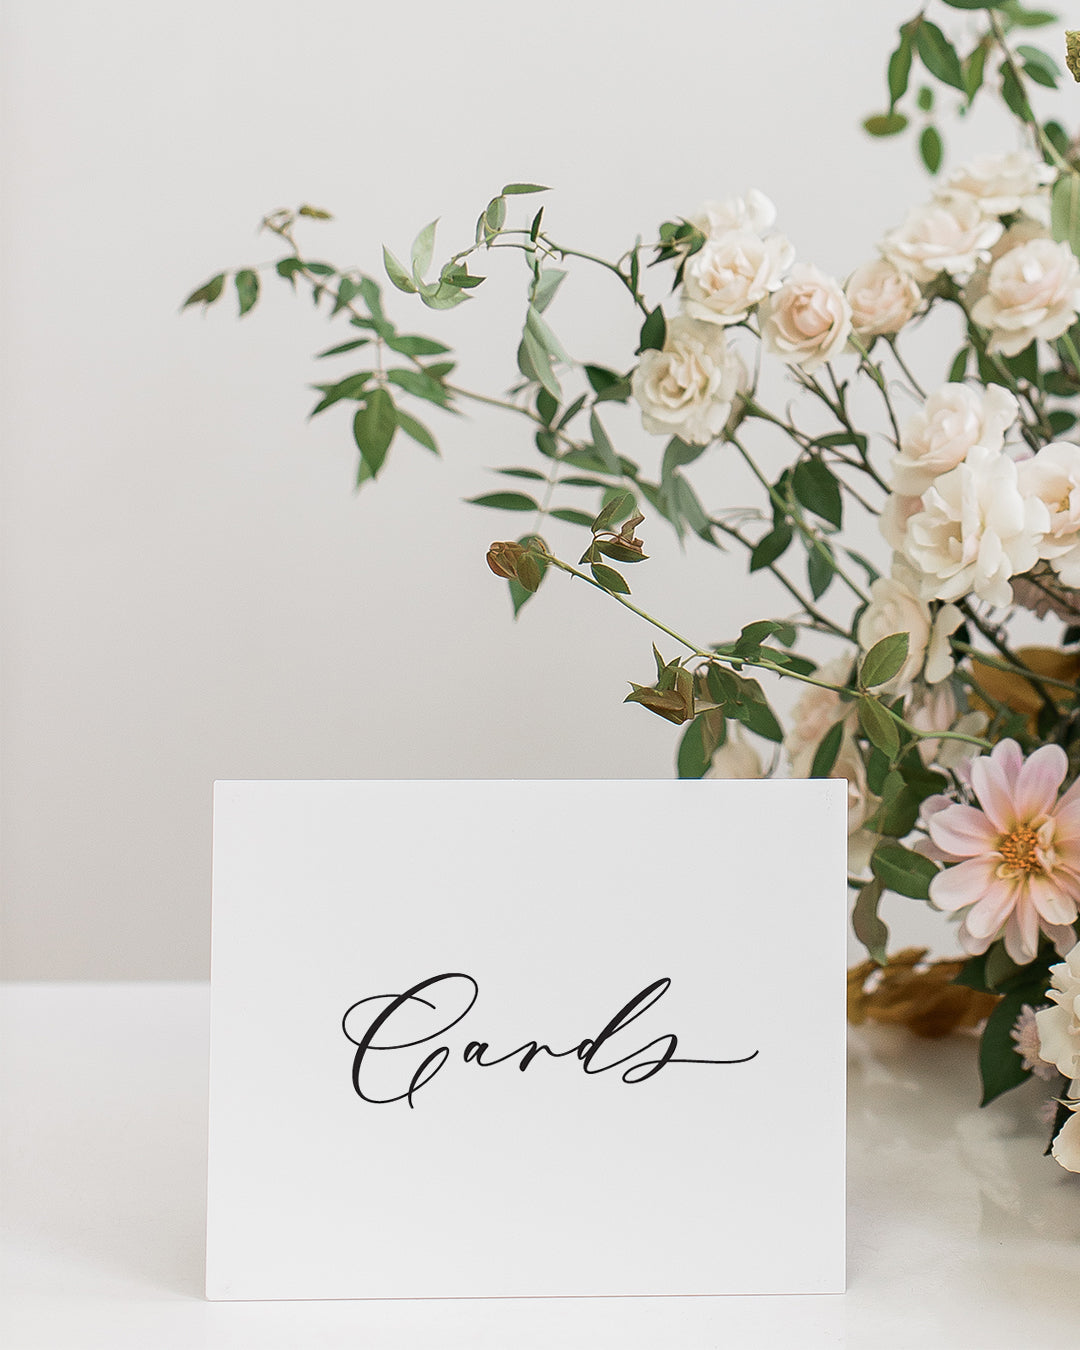 Cards And Gifts Sign | The Madelyn